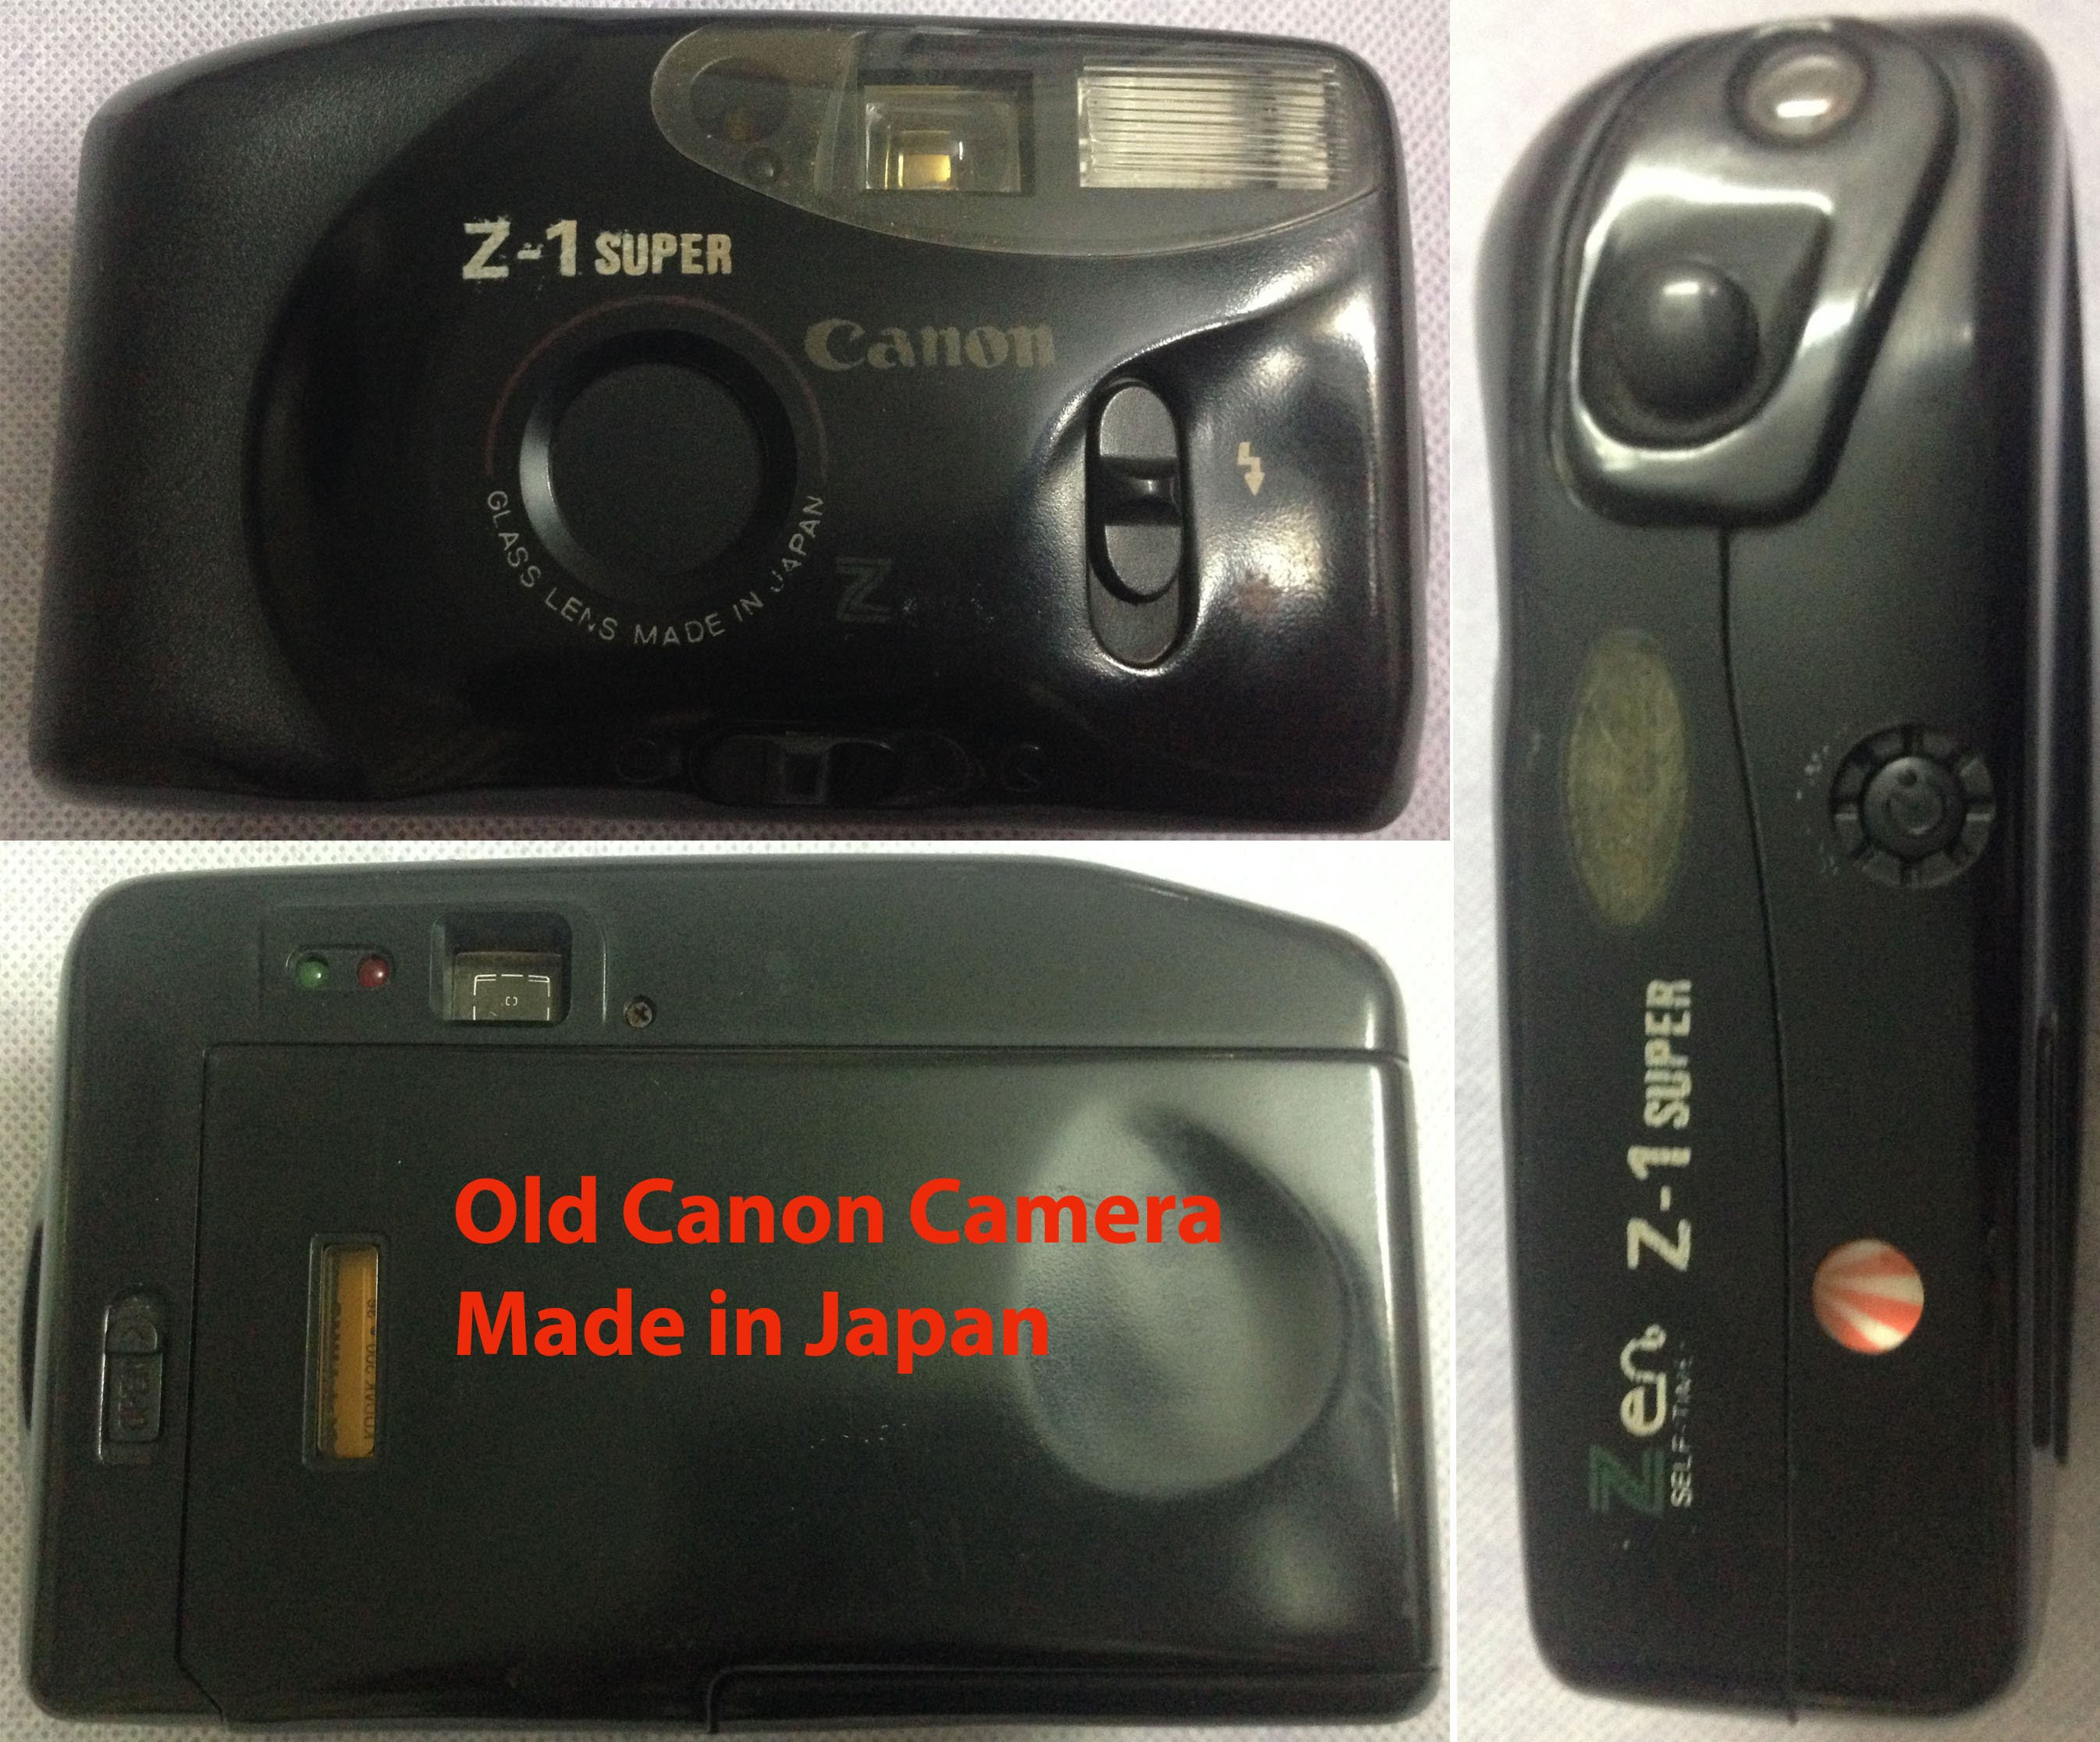 Canon camera   Camera   Old camera   Photography   picture - YouTube